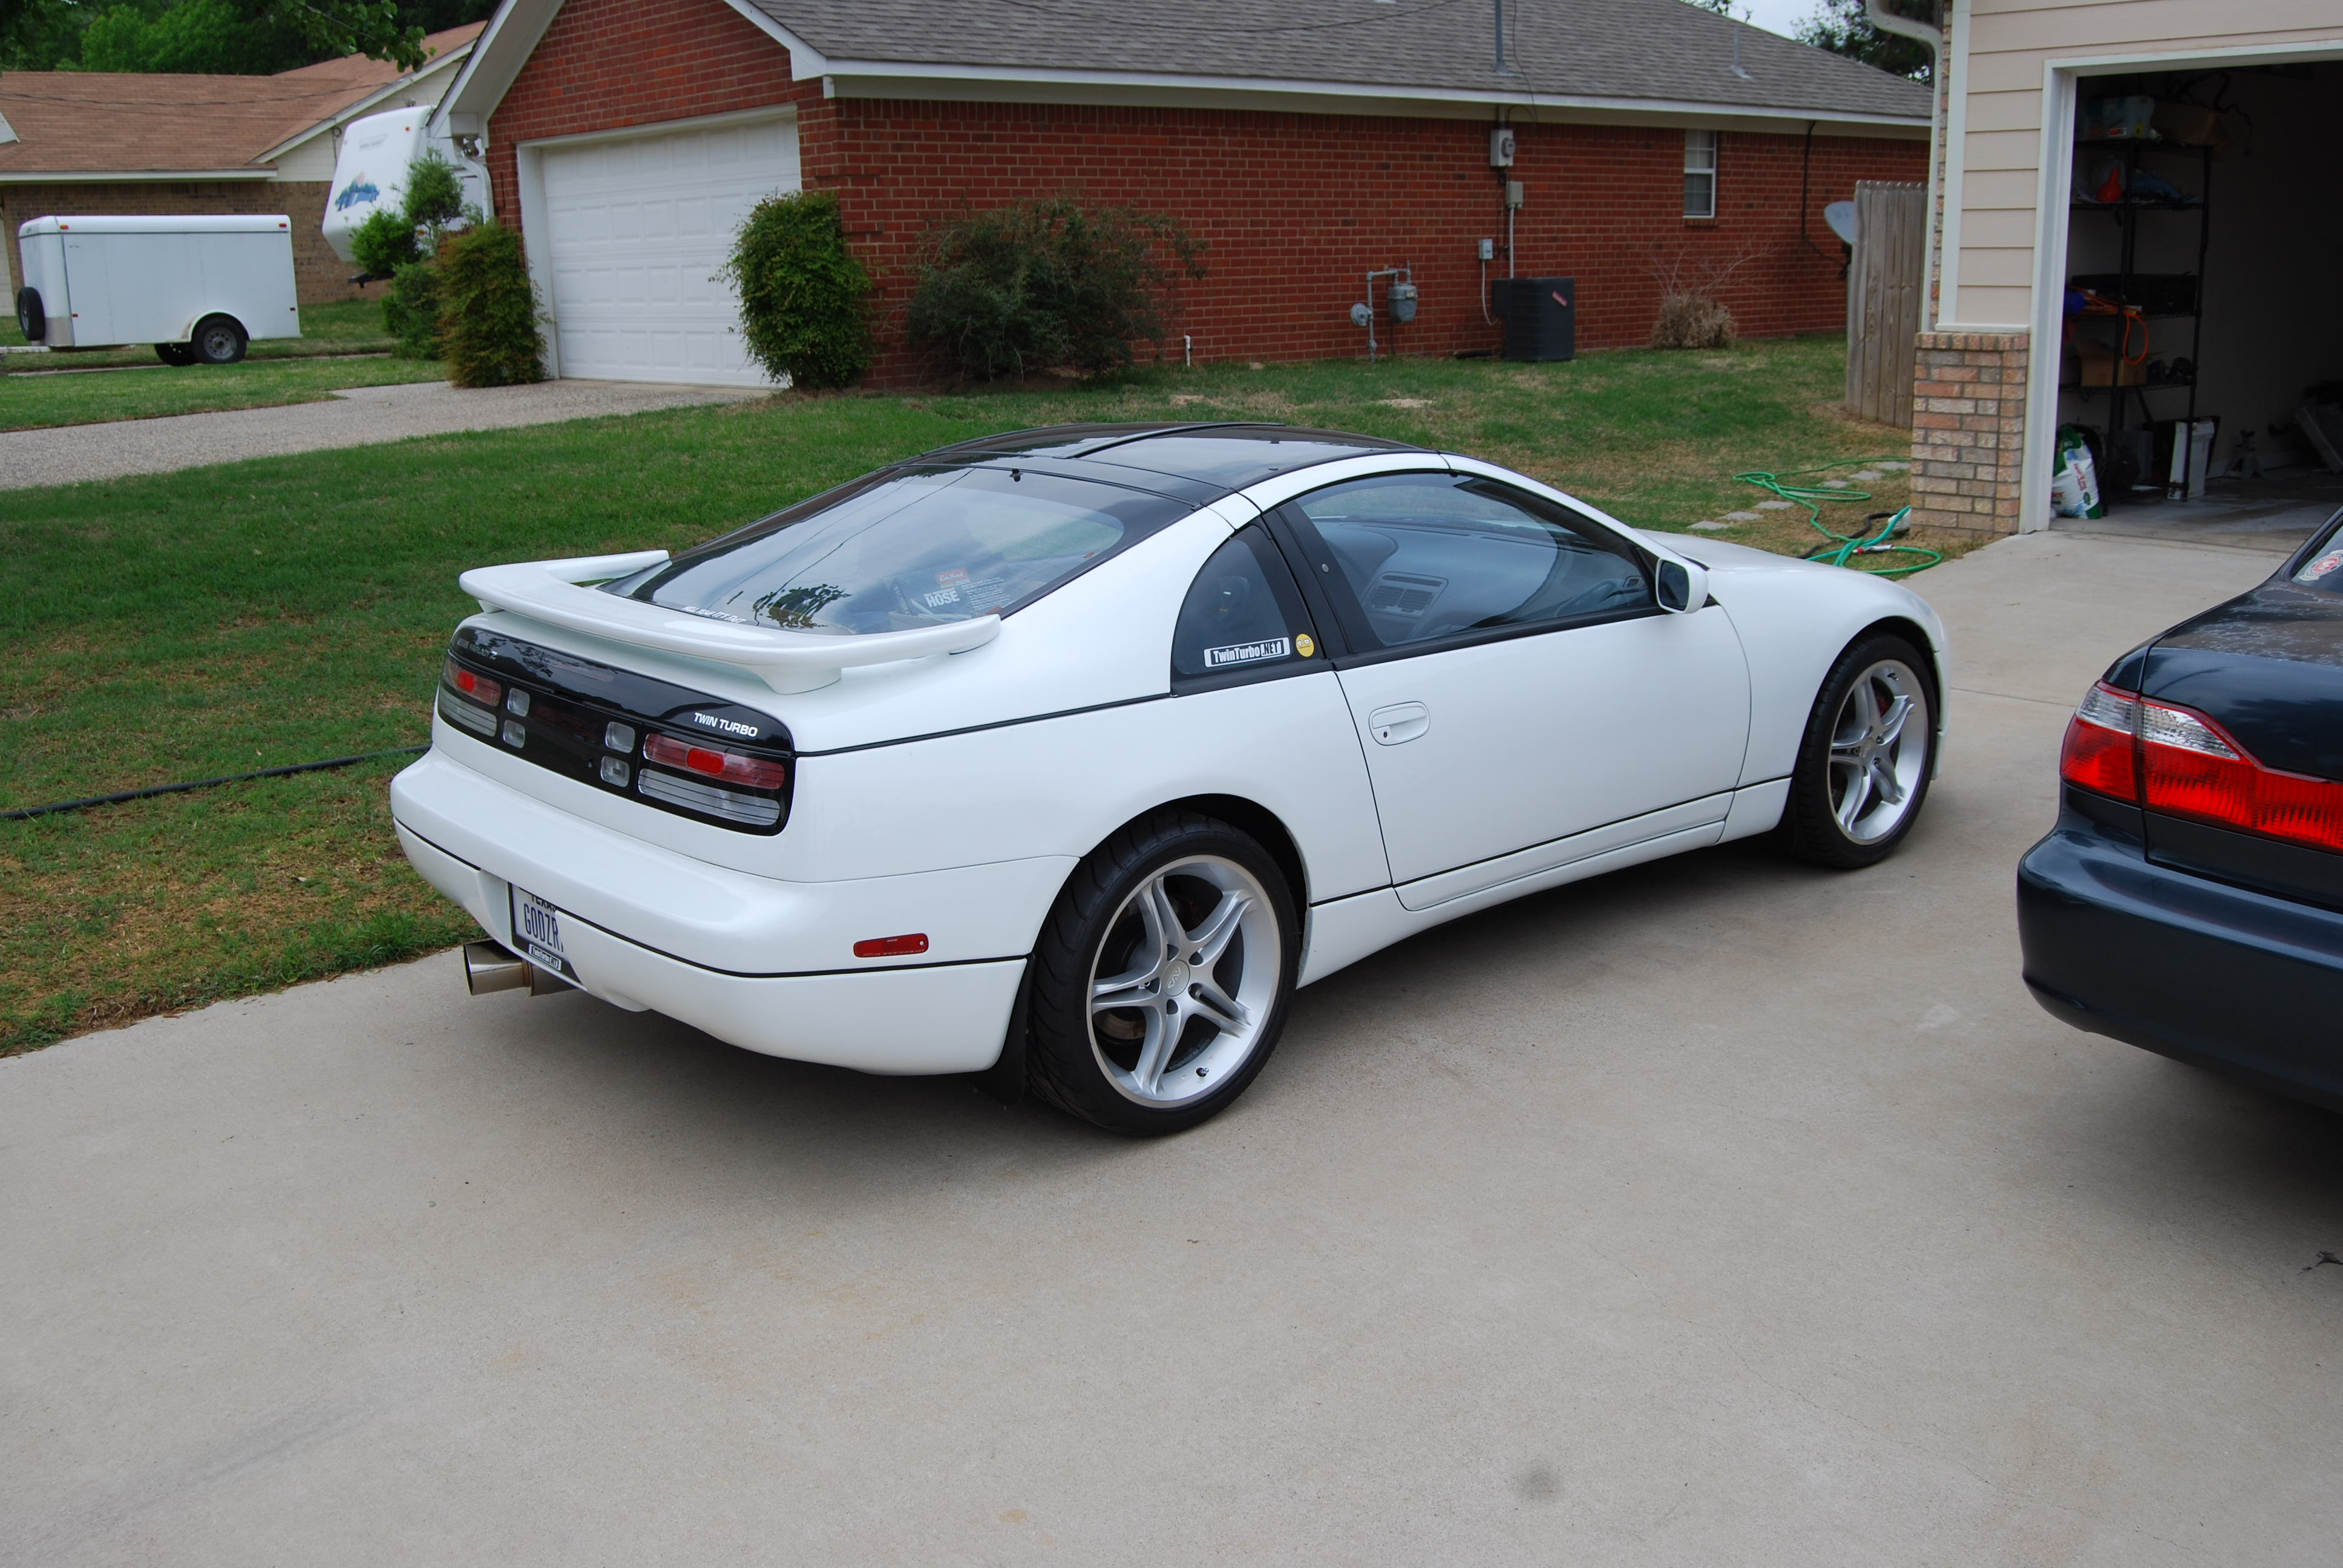 nissan 300zx slicktop weight loss